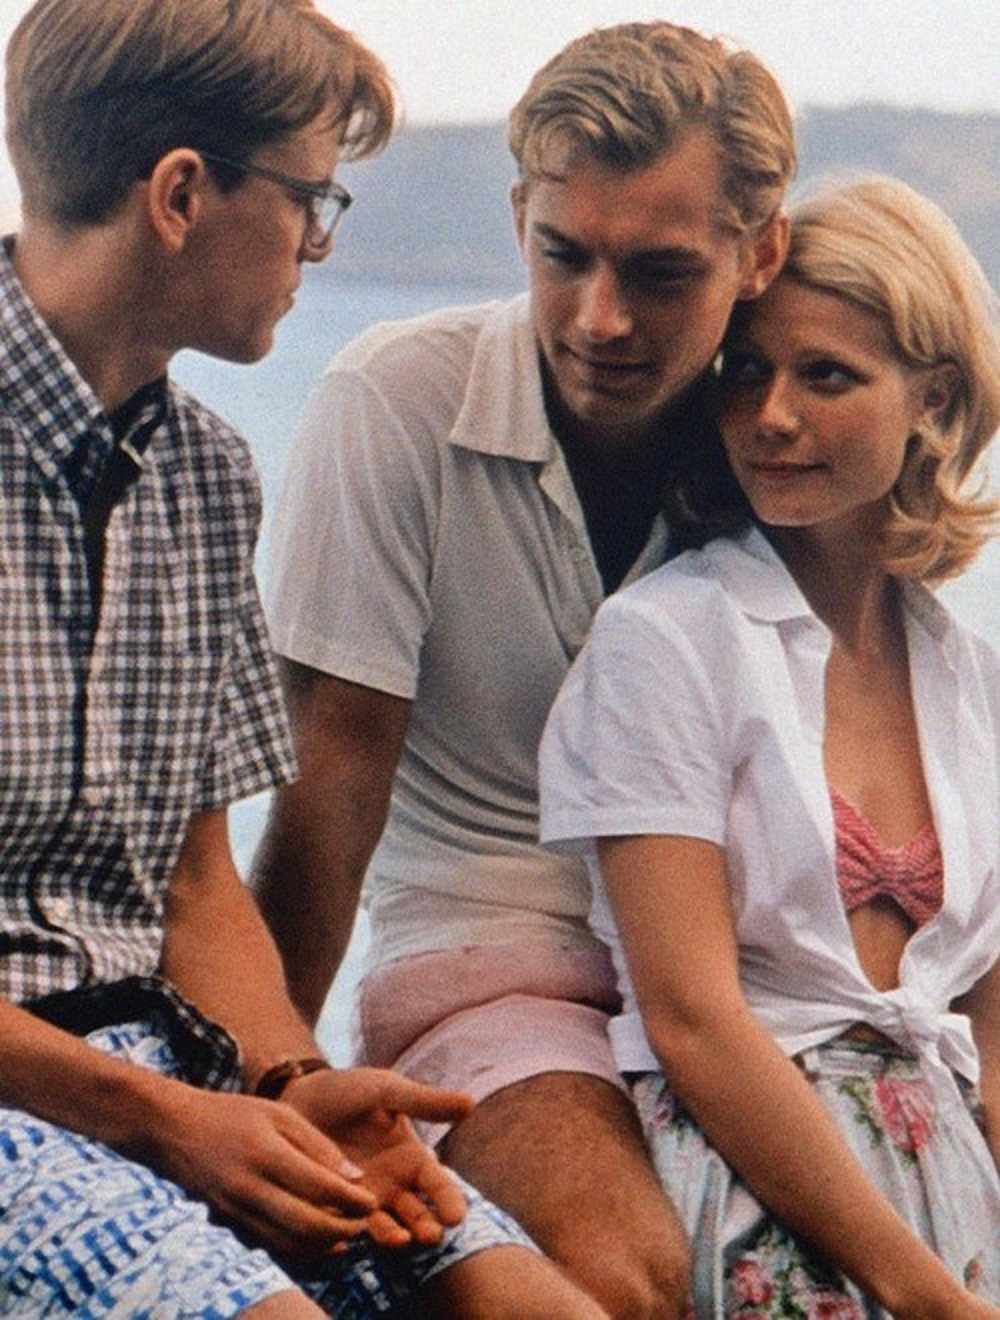 an analysis of toms traits in the talented mr ripley by patricia highsmith Mla sample research paper   how are generic techniques used within the text the talented mr ripley by patricia highsmith to shape  system analysis of.